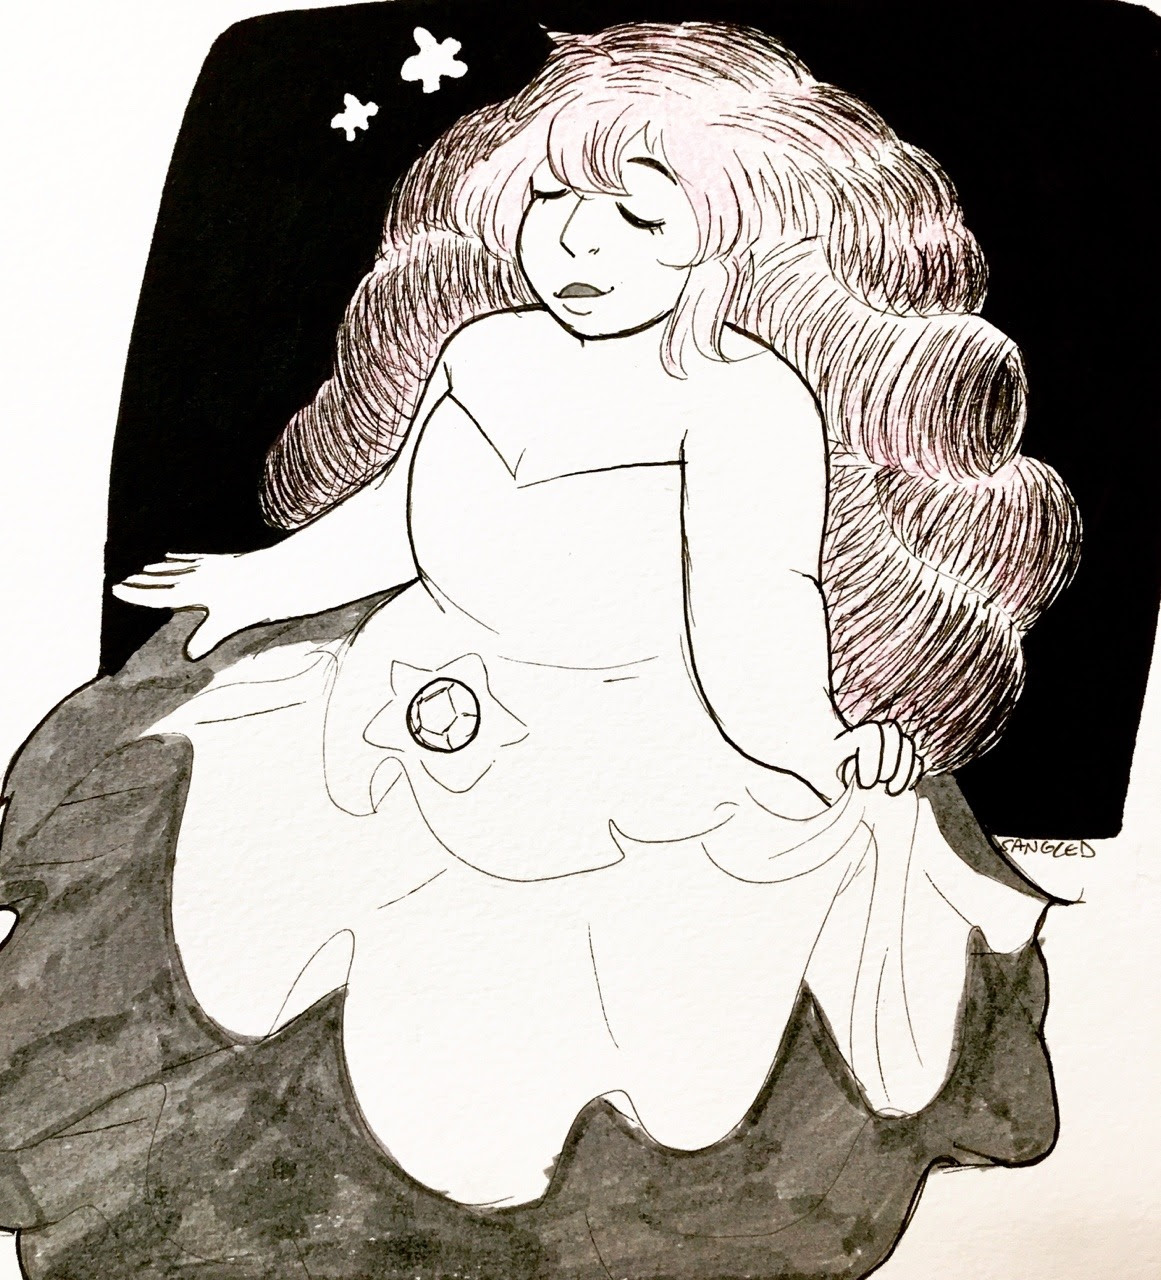 inktober day 8: her design is so relaxing, i can't help but draw her as serene every time